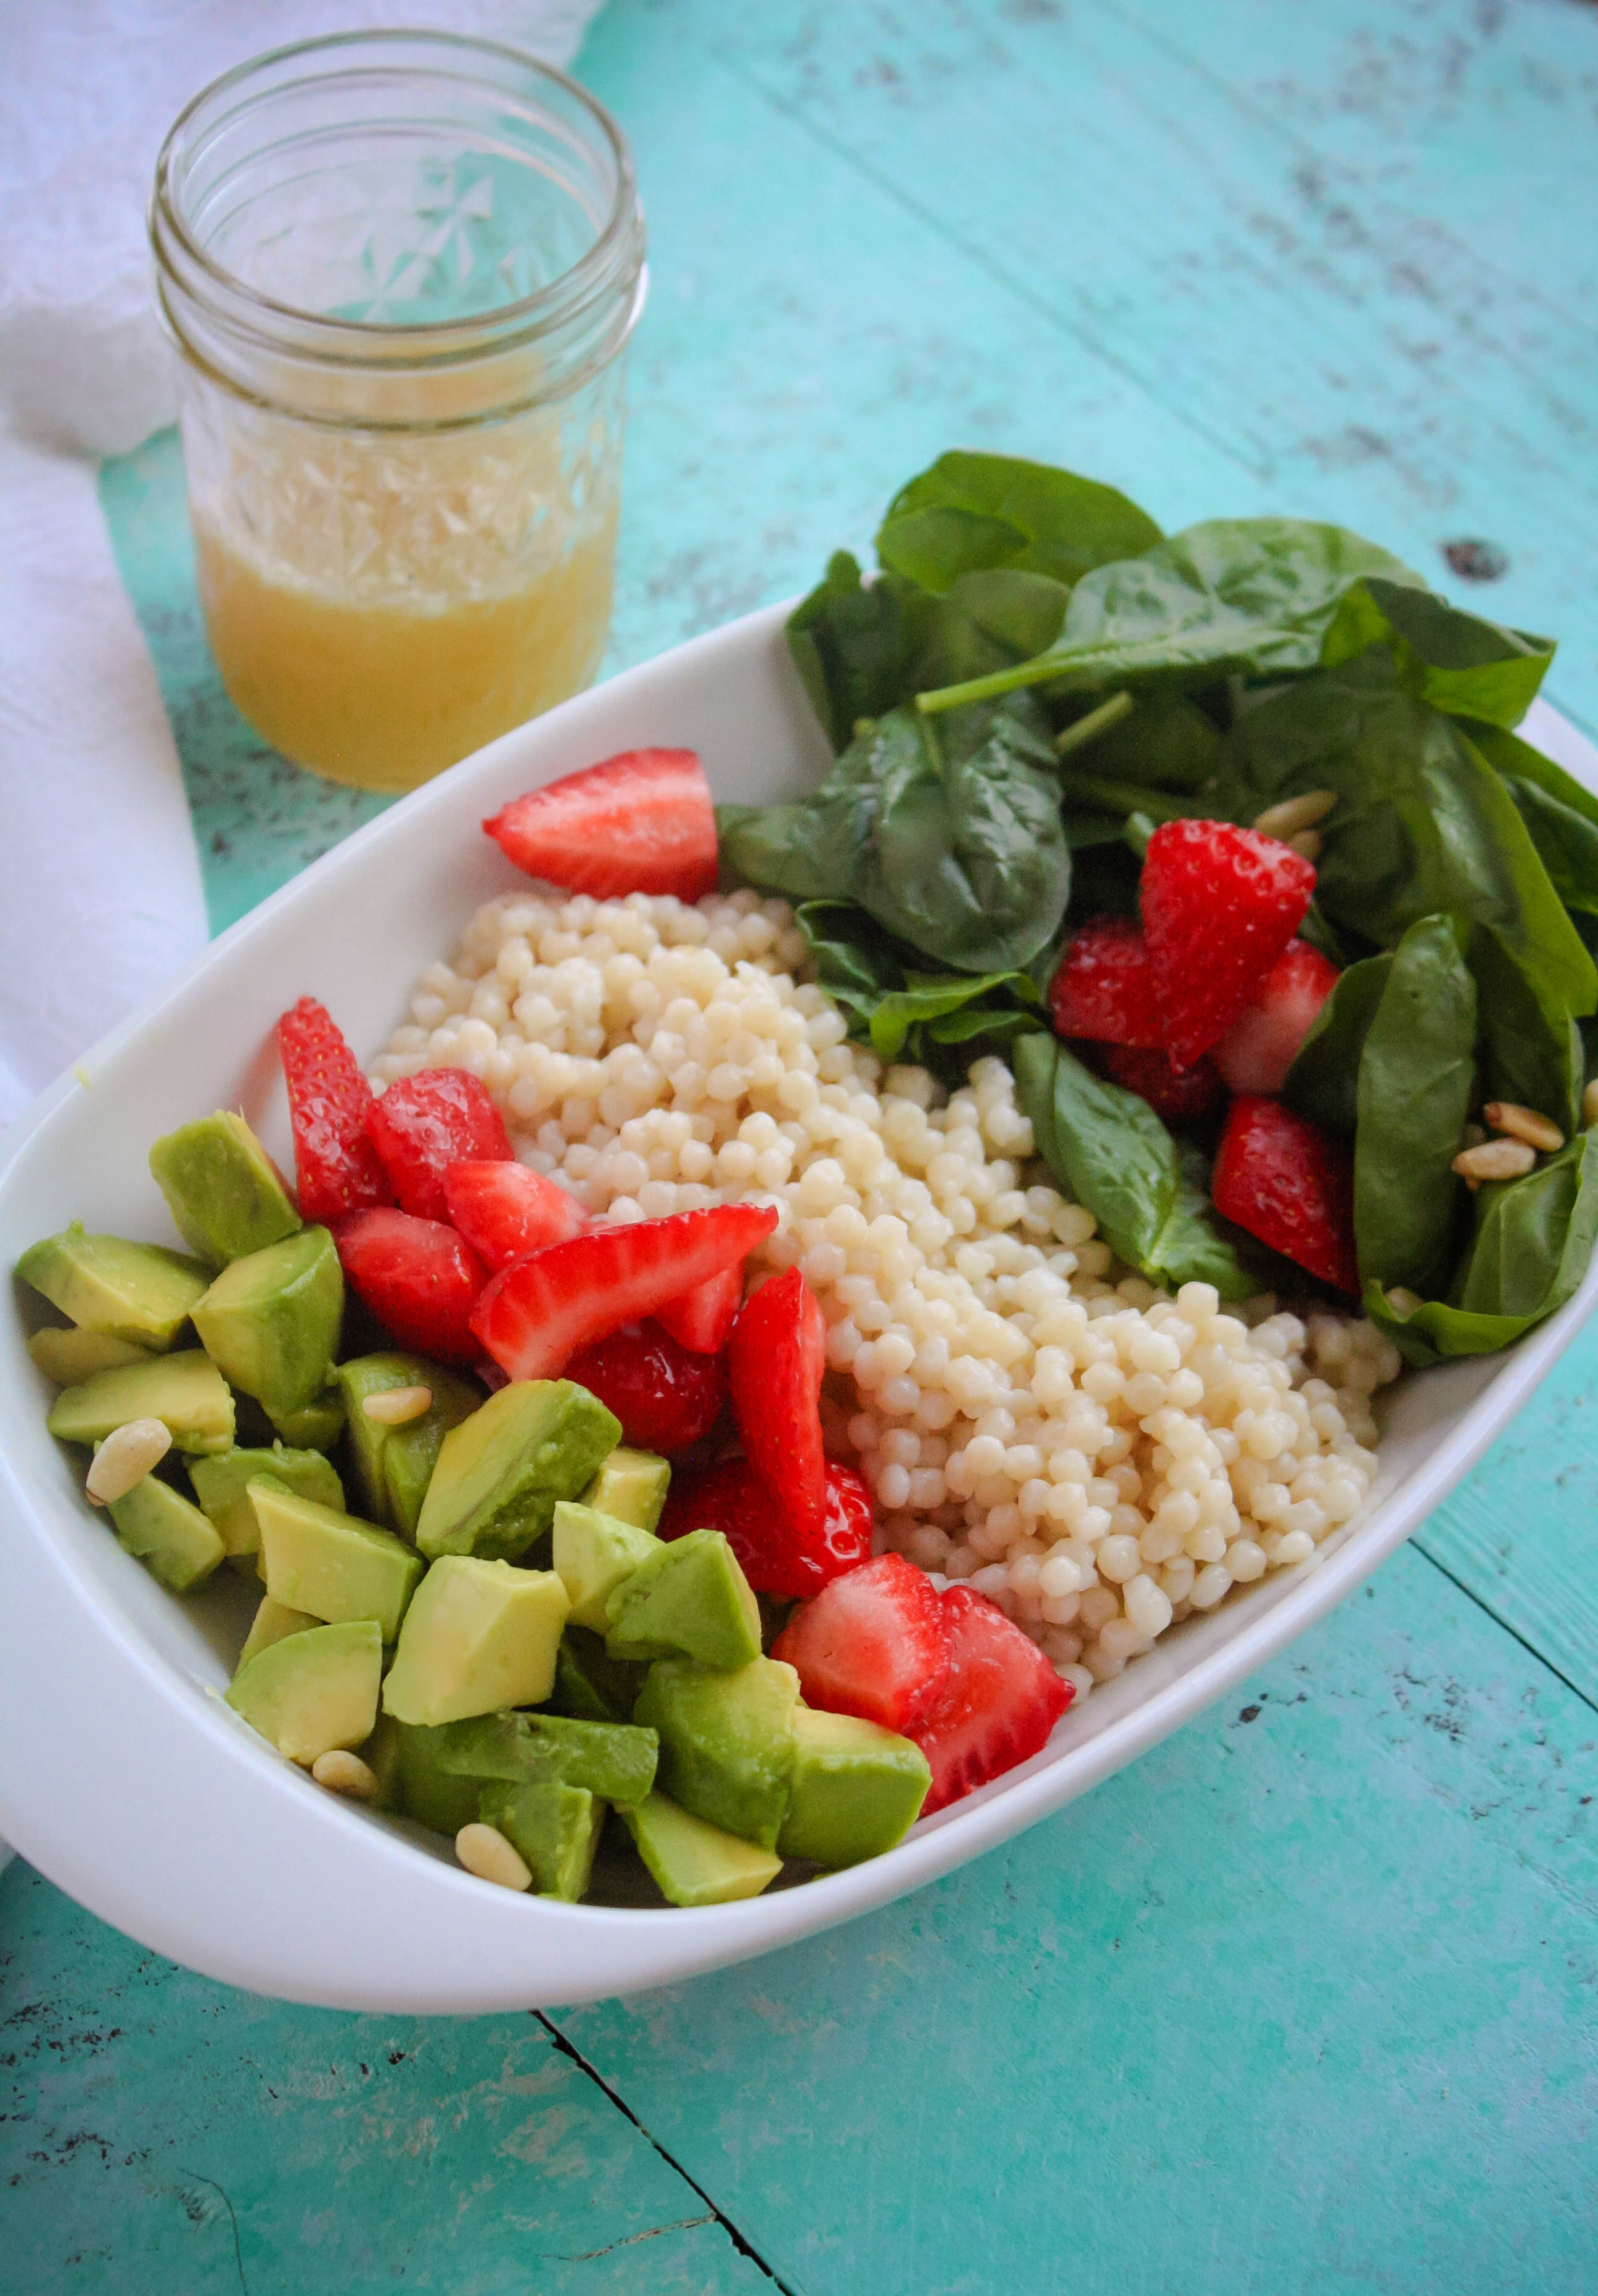 Spinach and Couscous Salad with Strawberries, Avocado & Honey-Lime Dressing is the kind of summer salad that will satisfy! Spinach and Couscous Salad with Strawberries, Avocado & Honey-Lime Dressing is a delightful summer dish.